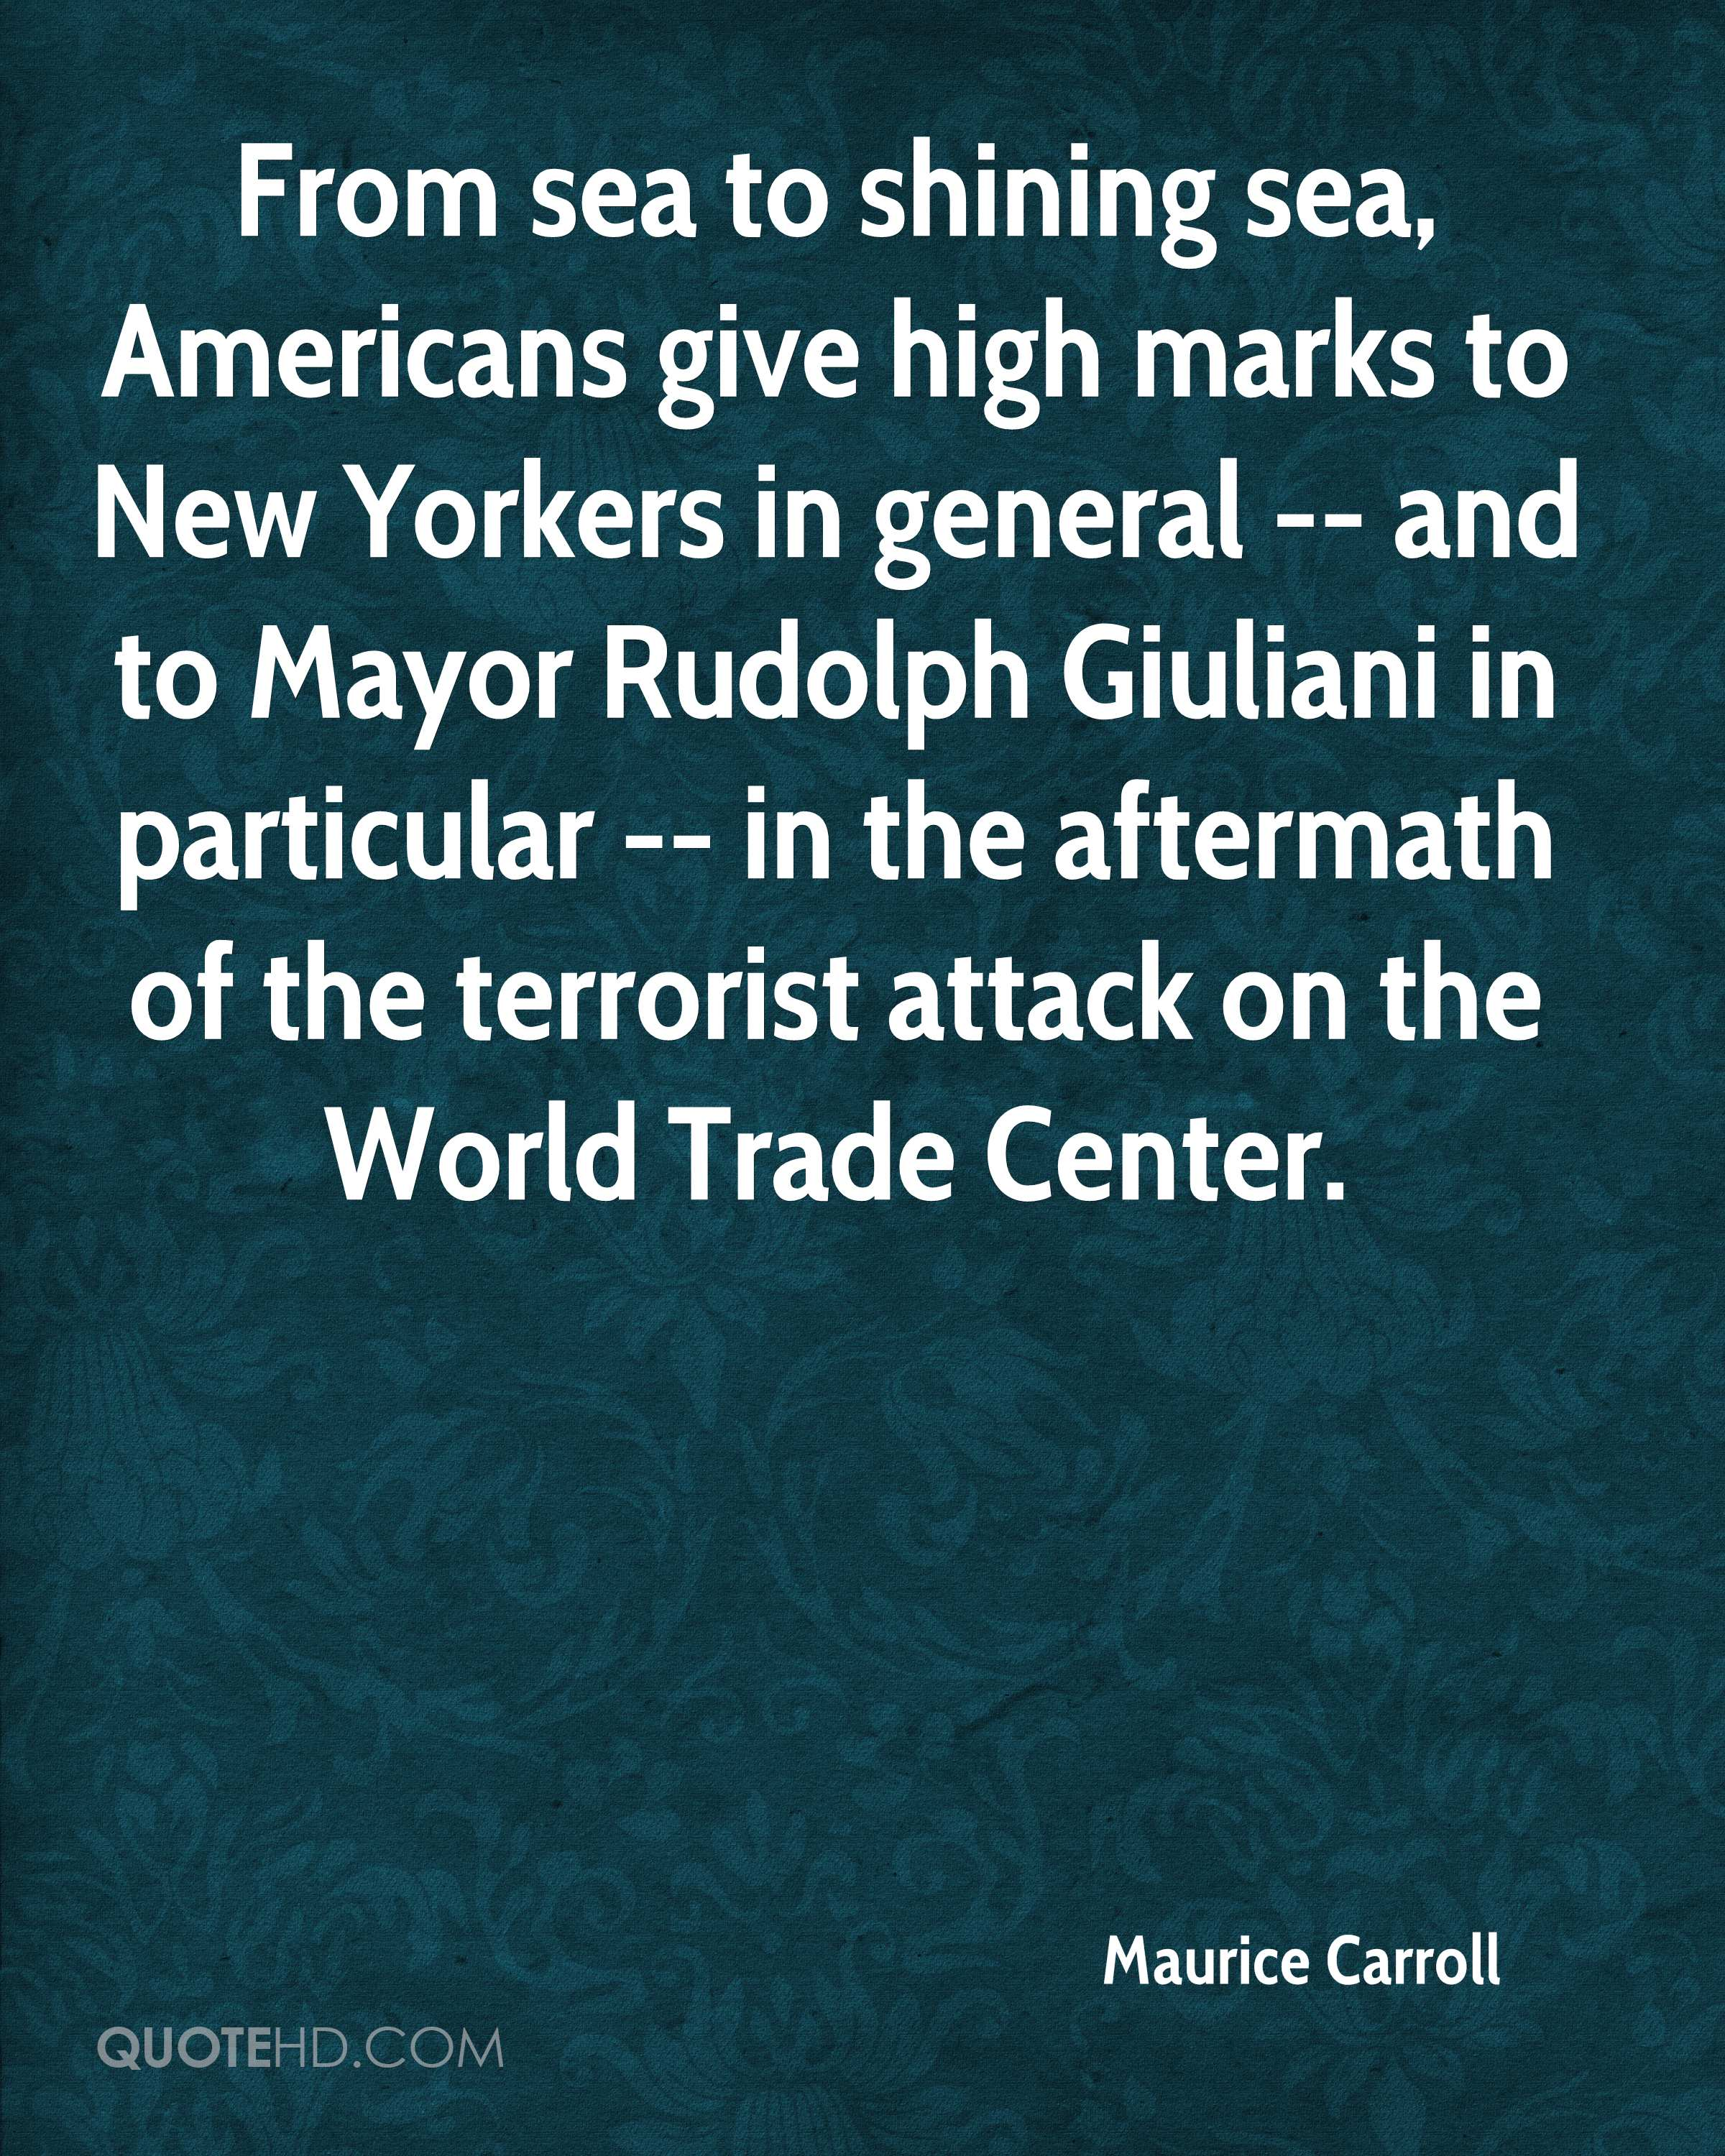 From sea to shining sea, Americans give high marks to New Yorkers in general -- and to Mayor Rudolph Giuliani in particular -- in the aftermath of the terrorist attack on the World Trade Center.